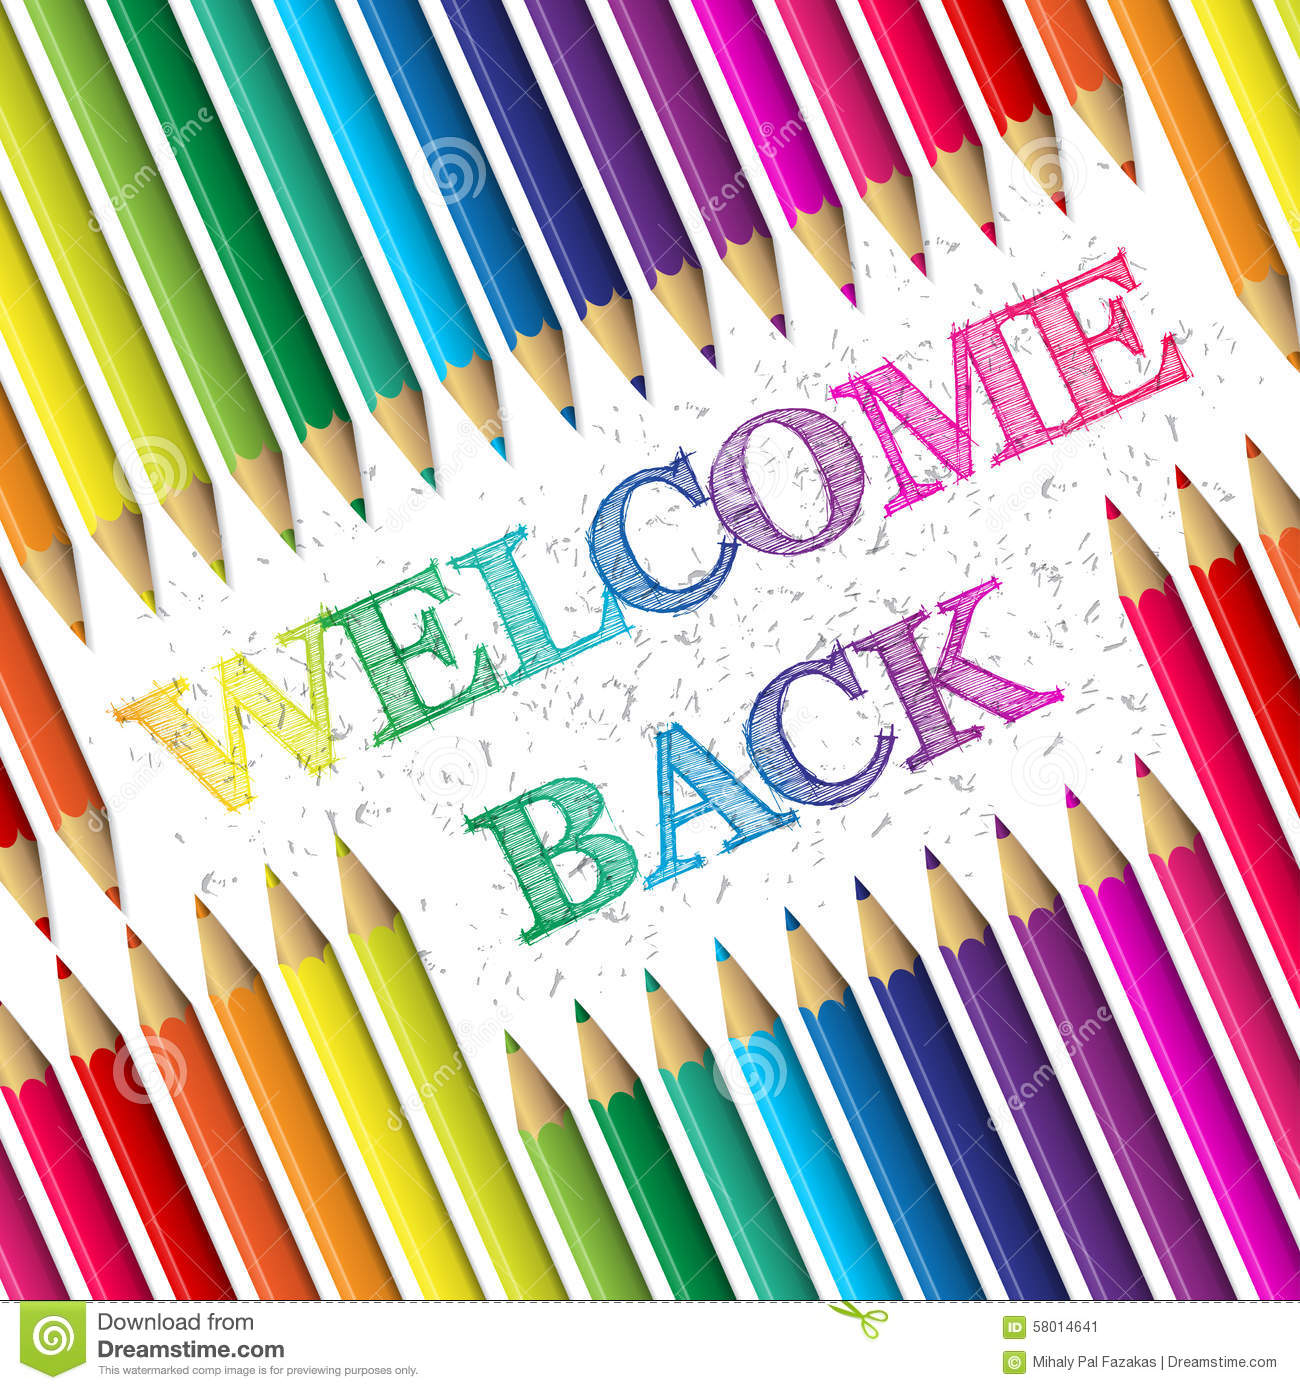 back-to-school-background-welcome-back-text-pencils-58014641.jpg